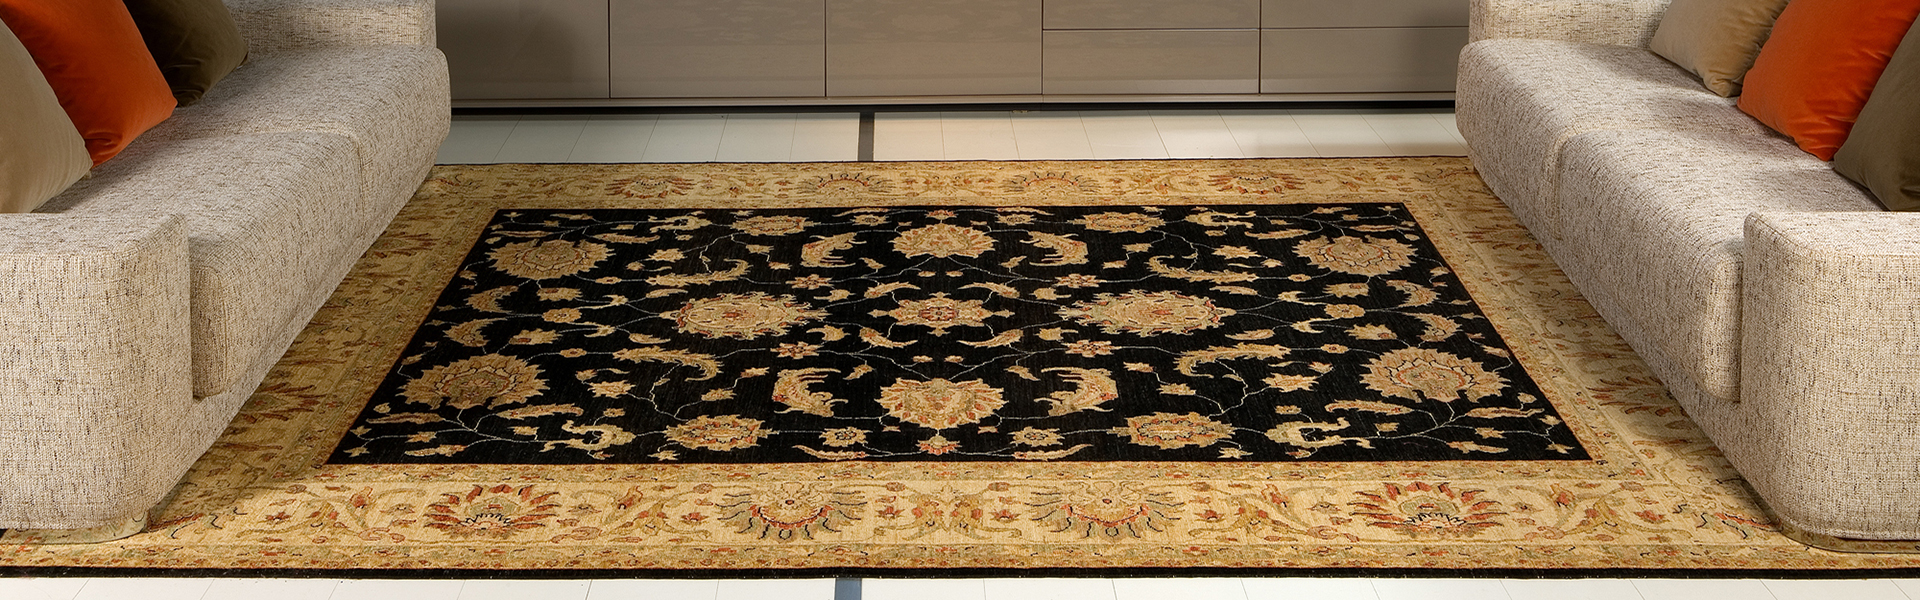 oriental-rug-cleaning-in-Greenville-SC1